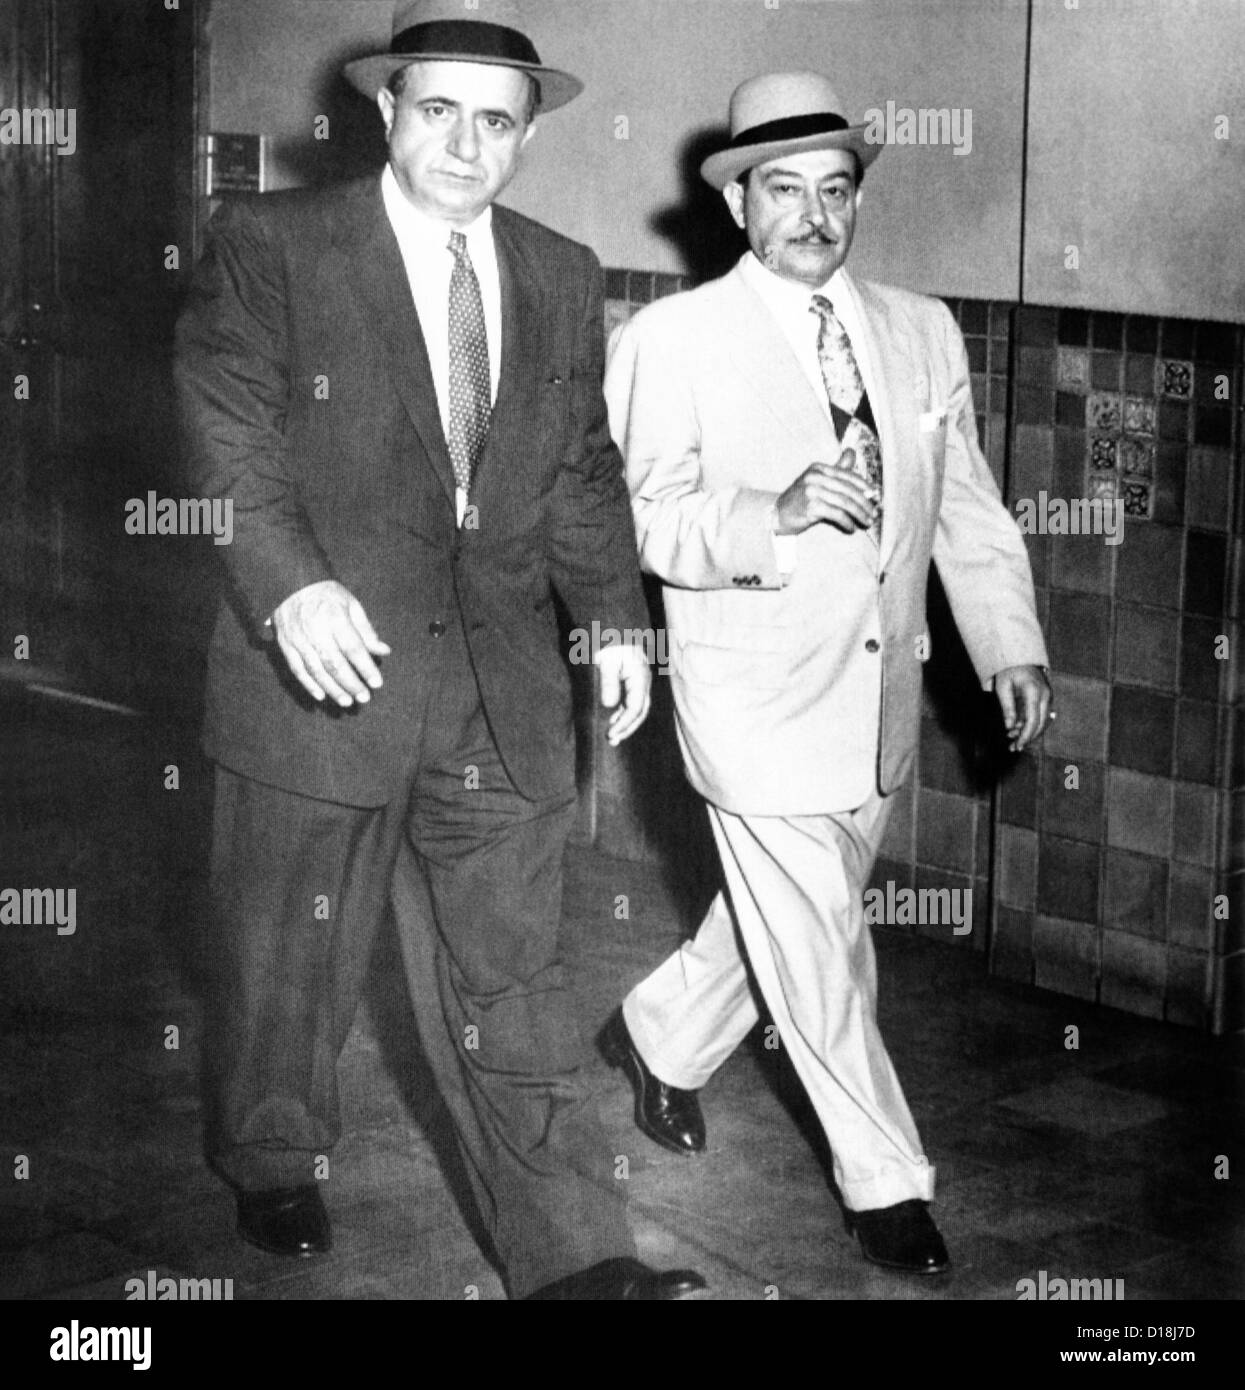 Albert Anastasia (left) leaves Federal District Court with his attorney, Anthony Colendra. He pleaded 'not guilty' - Stock Image